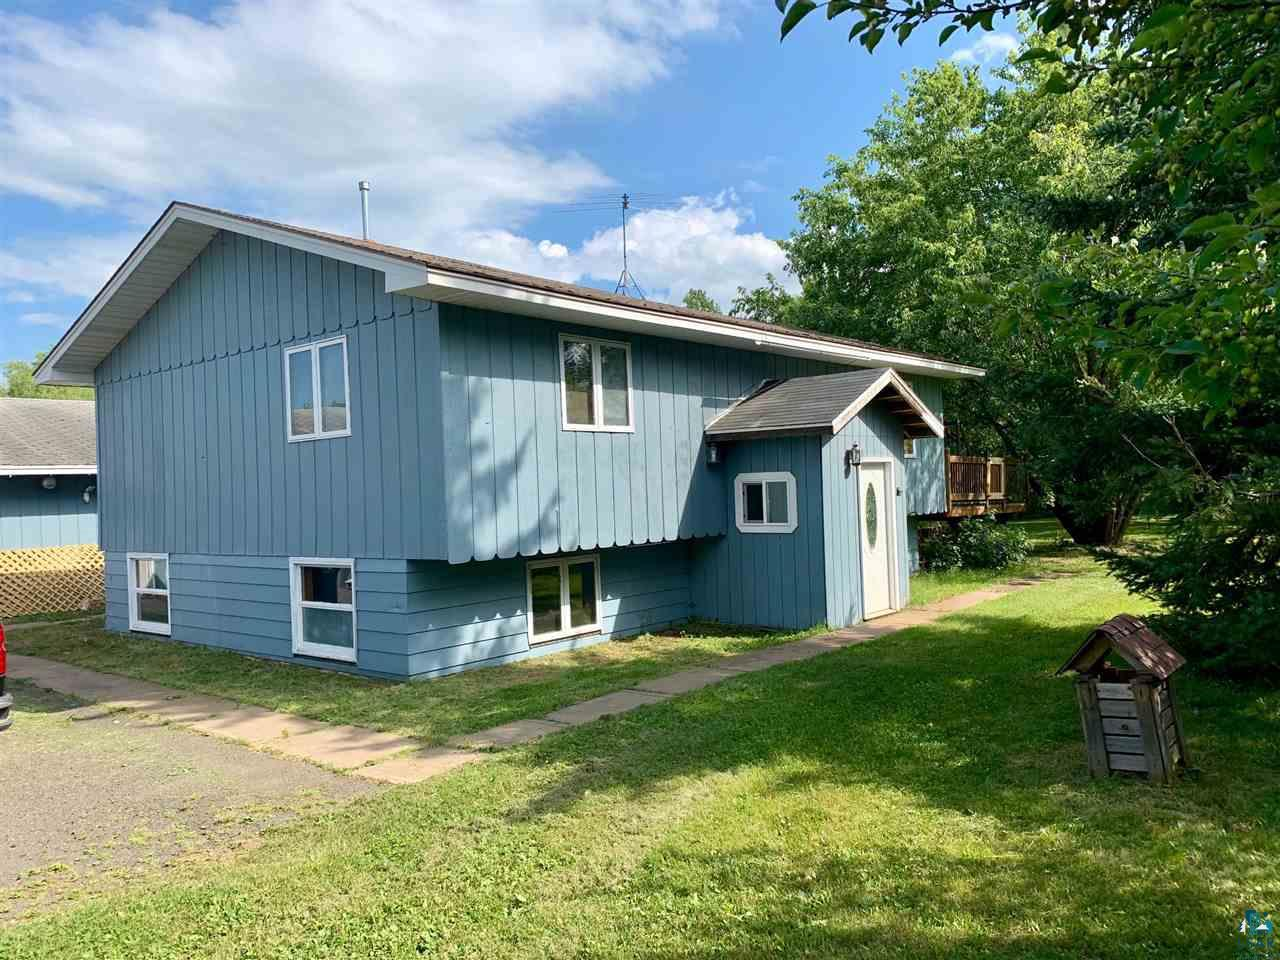 Very spacious split entry on 6.8 acres. Amnicon area. Three bedroom and two bath. Four car garage with large storage area along back side. Large deck off kitchen overlooks park-like yard. This home has a relaxed country vibe.